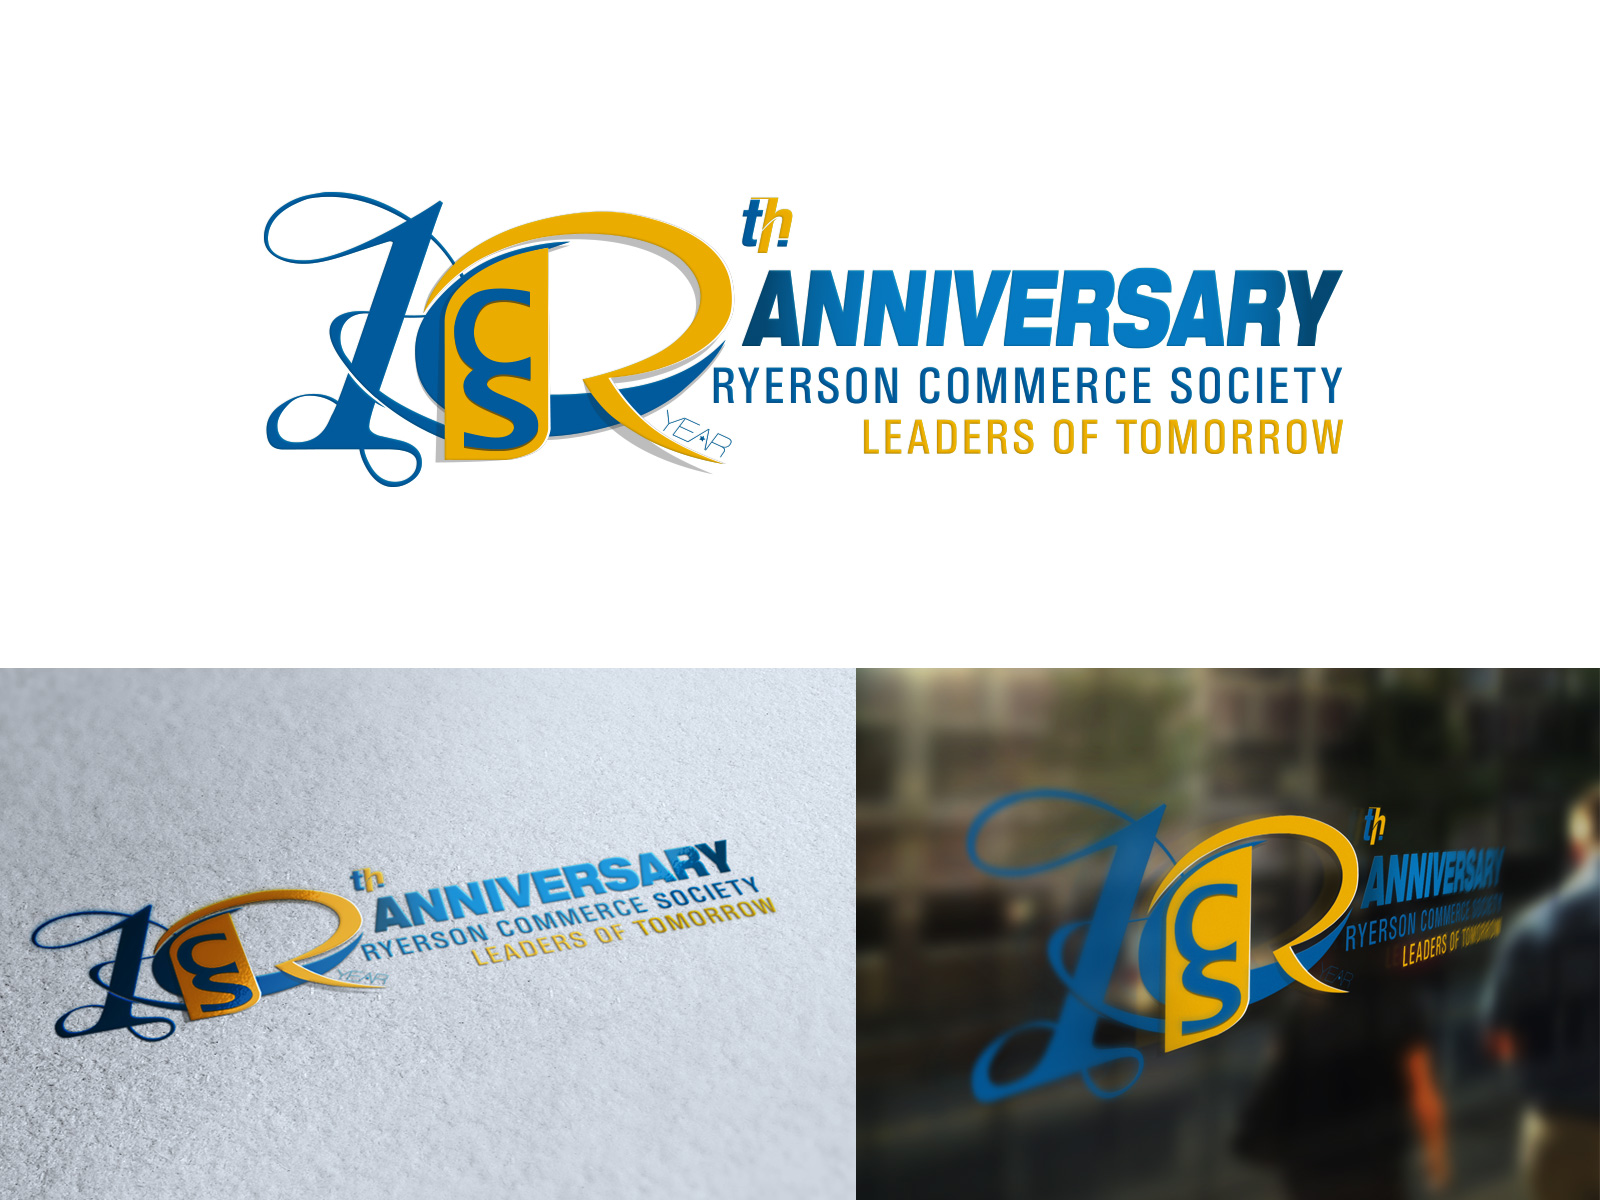 Logo Design by olii - Entry No. 80 in the Logo Design Contest 10 Year Anniversary Logo Design for the Ryerson Commerce Society.